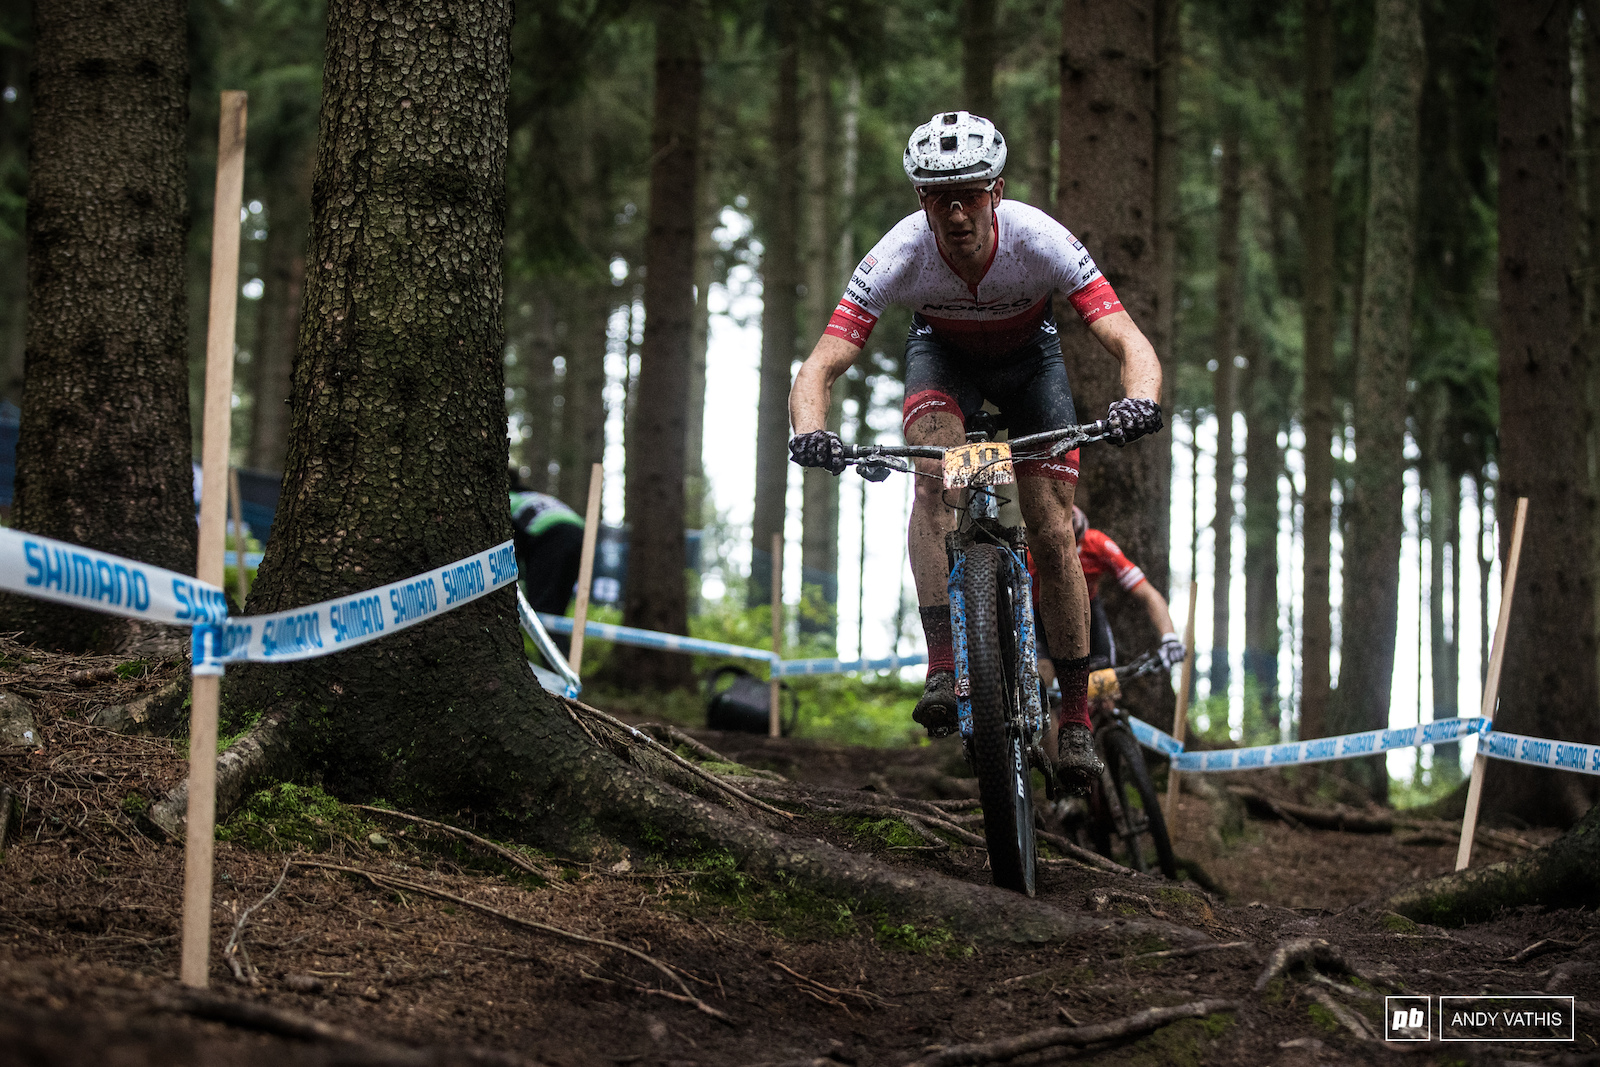 Sean Fincham had a great start and even lead for a short while. He d eventually get caught and settle for fifth.